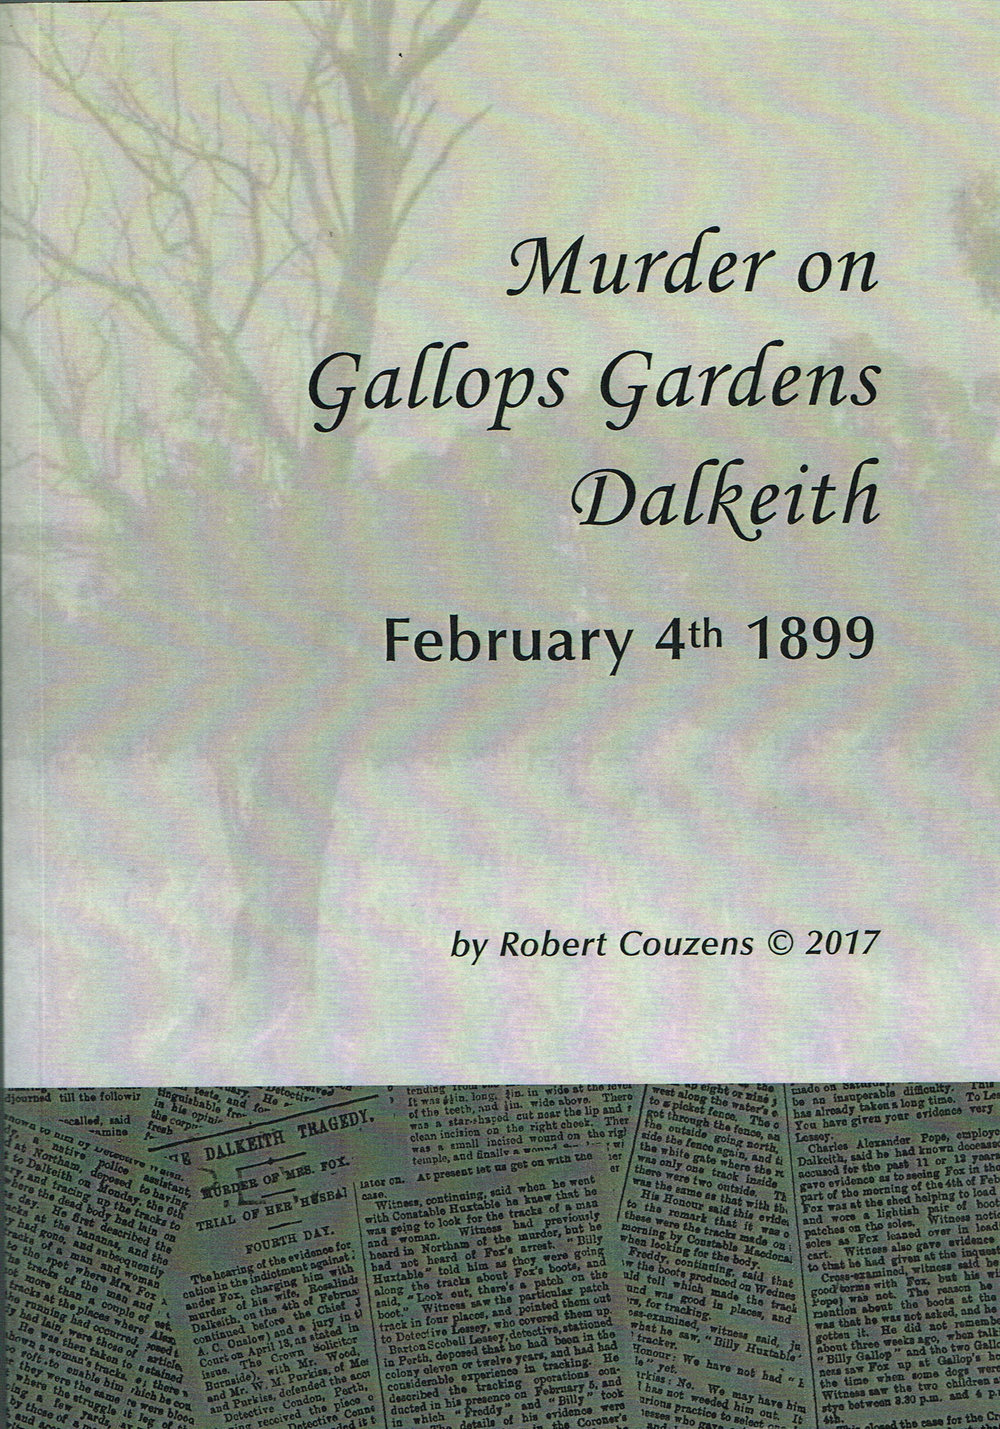 Murder_on_Gallops_Gardens_Dalkeith.jpg